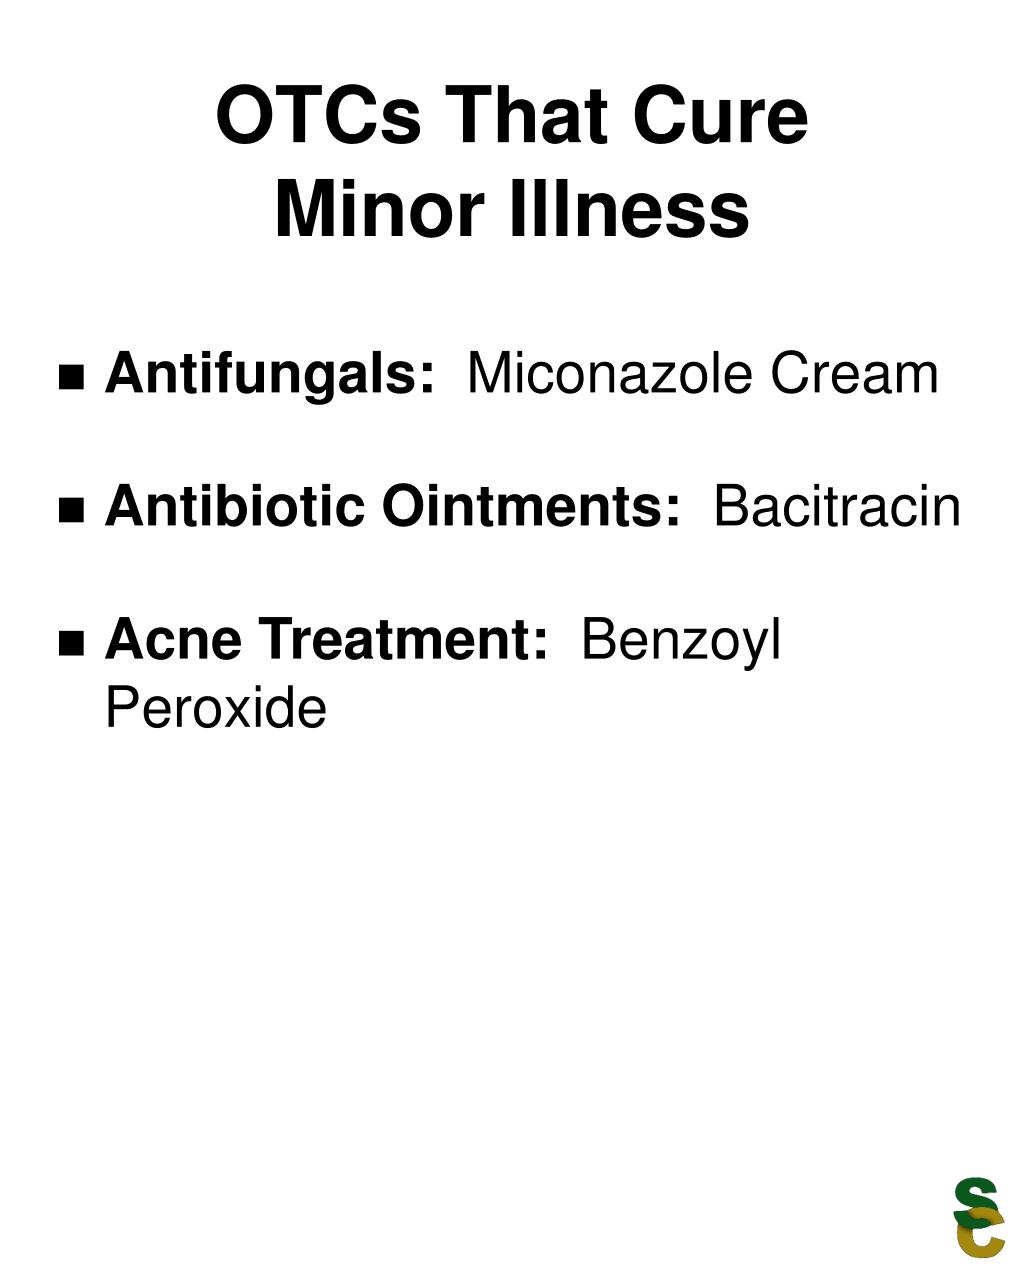 OTCs That Cure Minor Illness